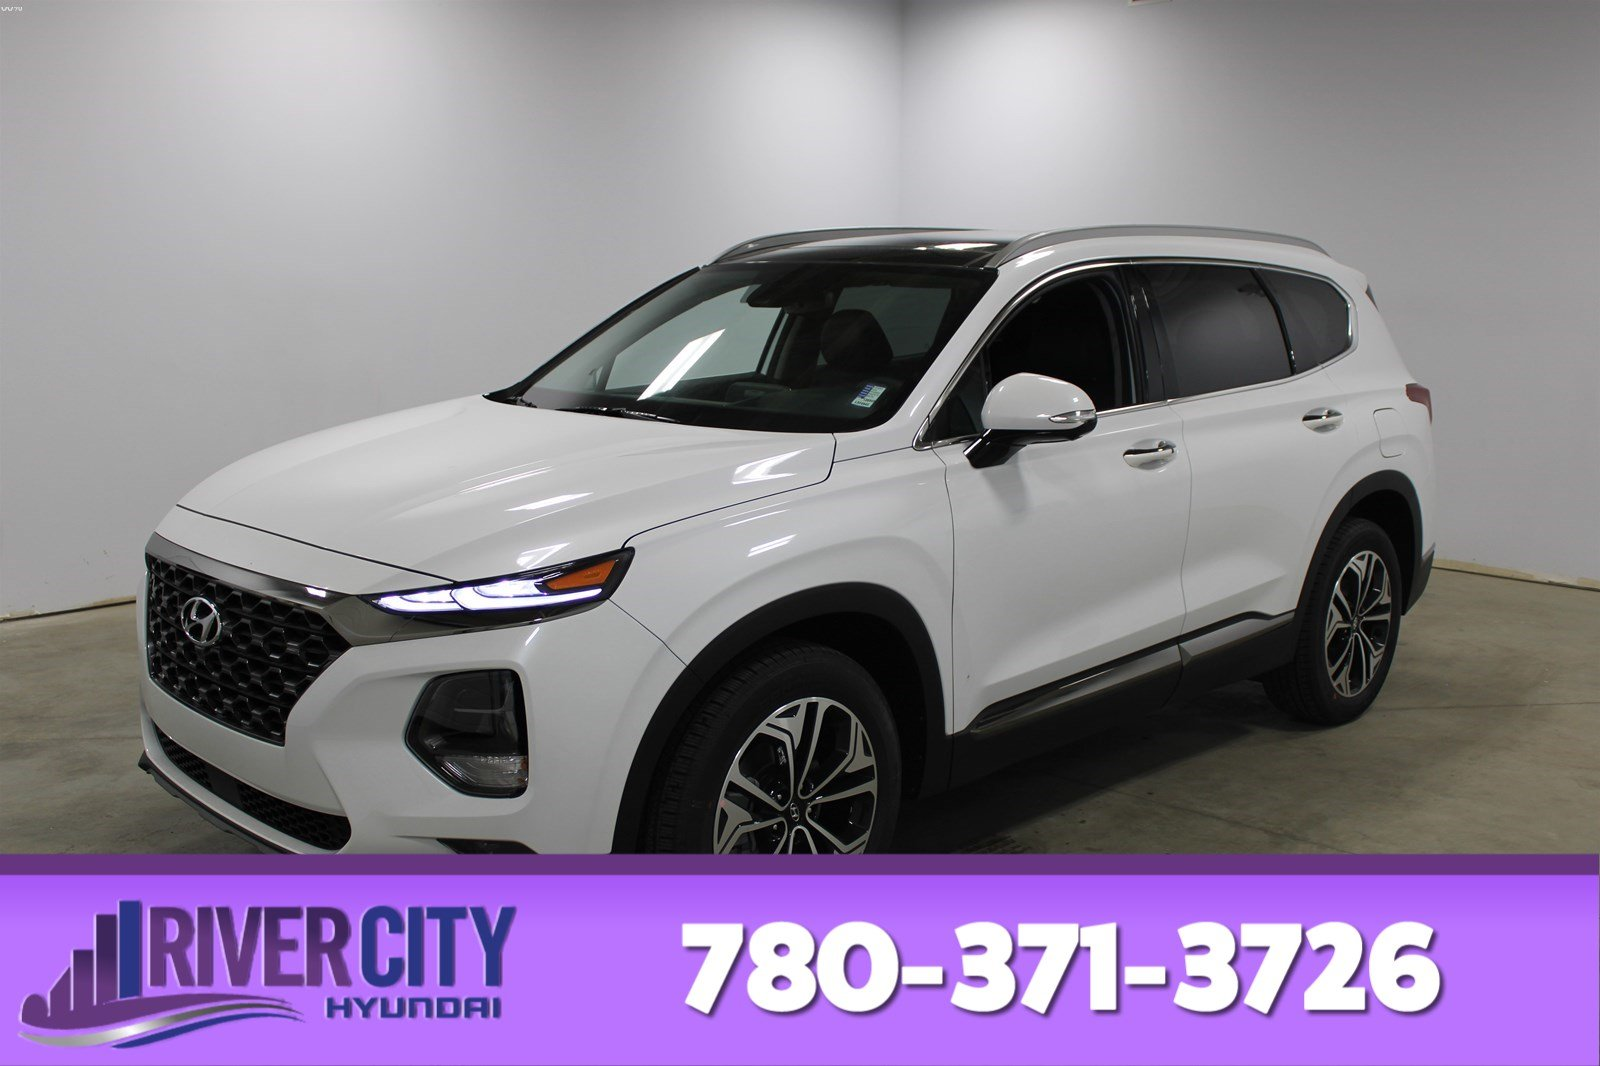 New 2020 Hyundai Santa Fe ULTIMATE AWD 2.0T POWER PANORAMIC SUNROOF,LEATHER SEATING SURFACES,REARVIEW CAMERA,BLUETOOTH